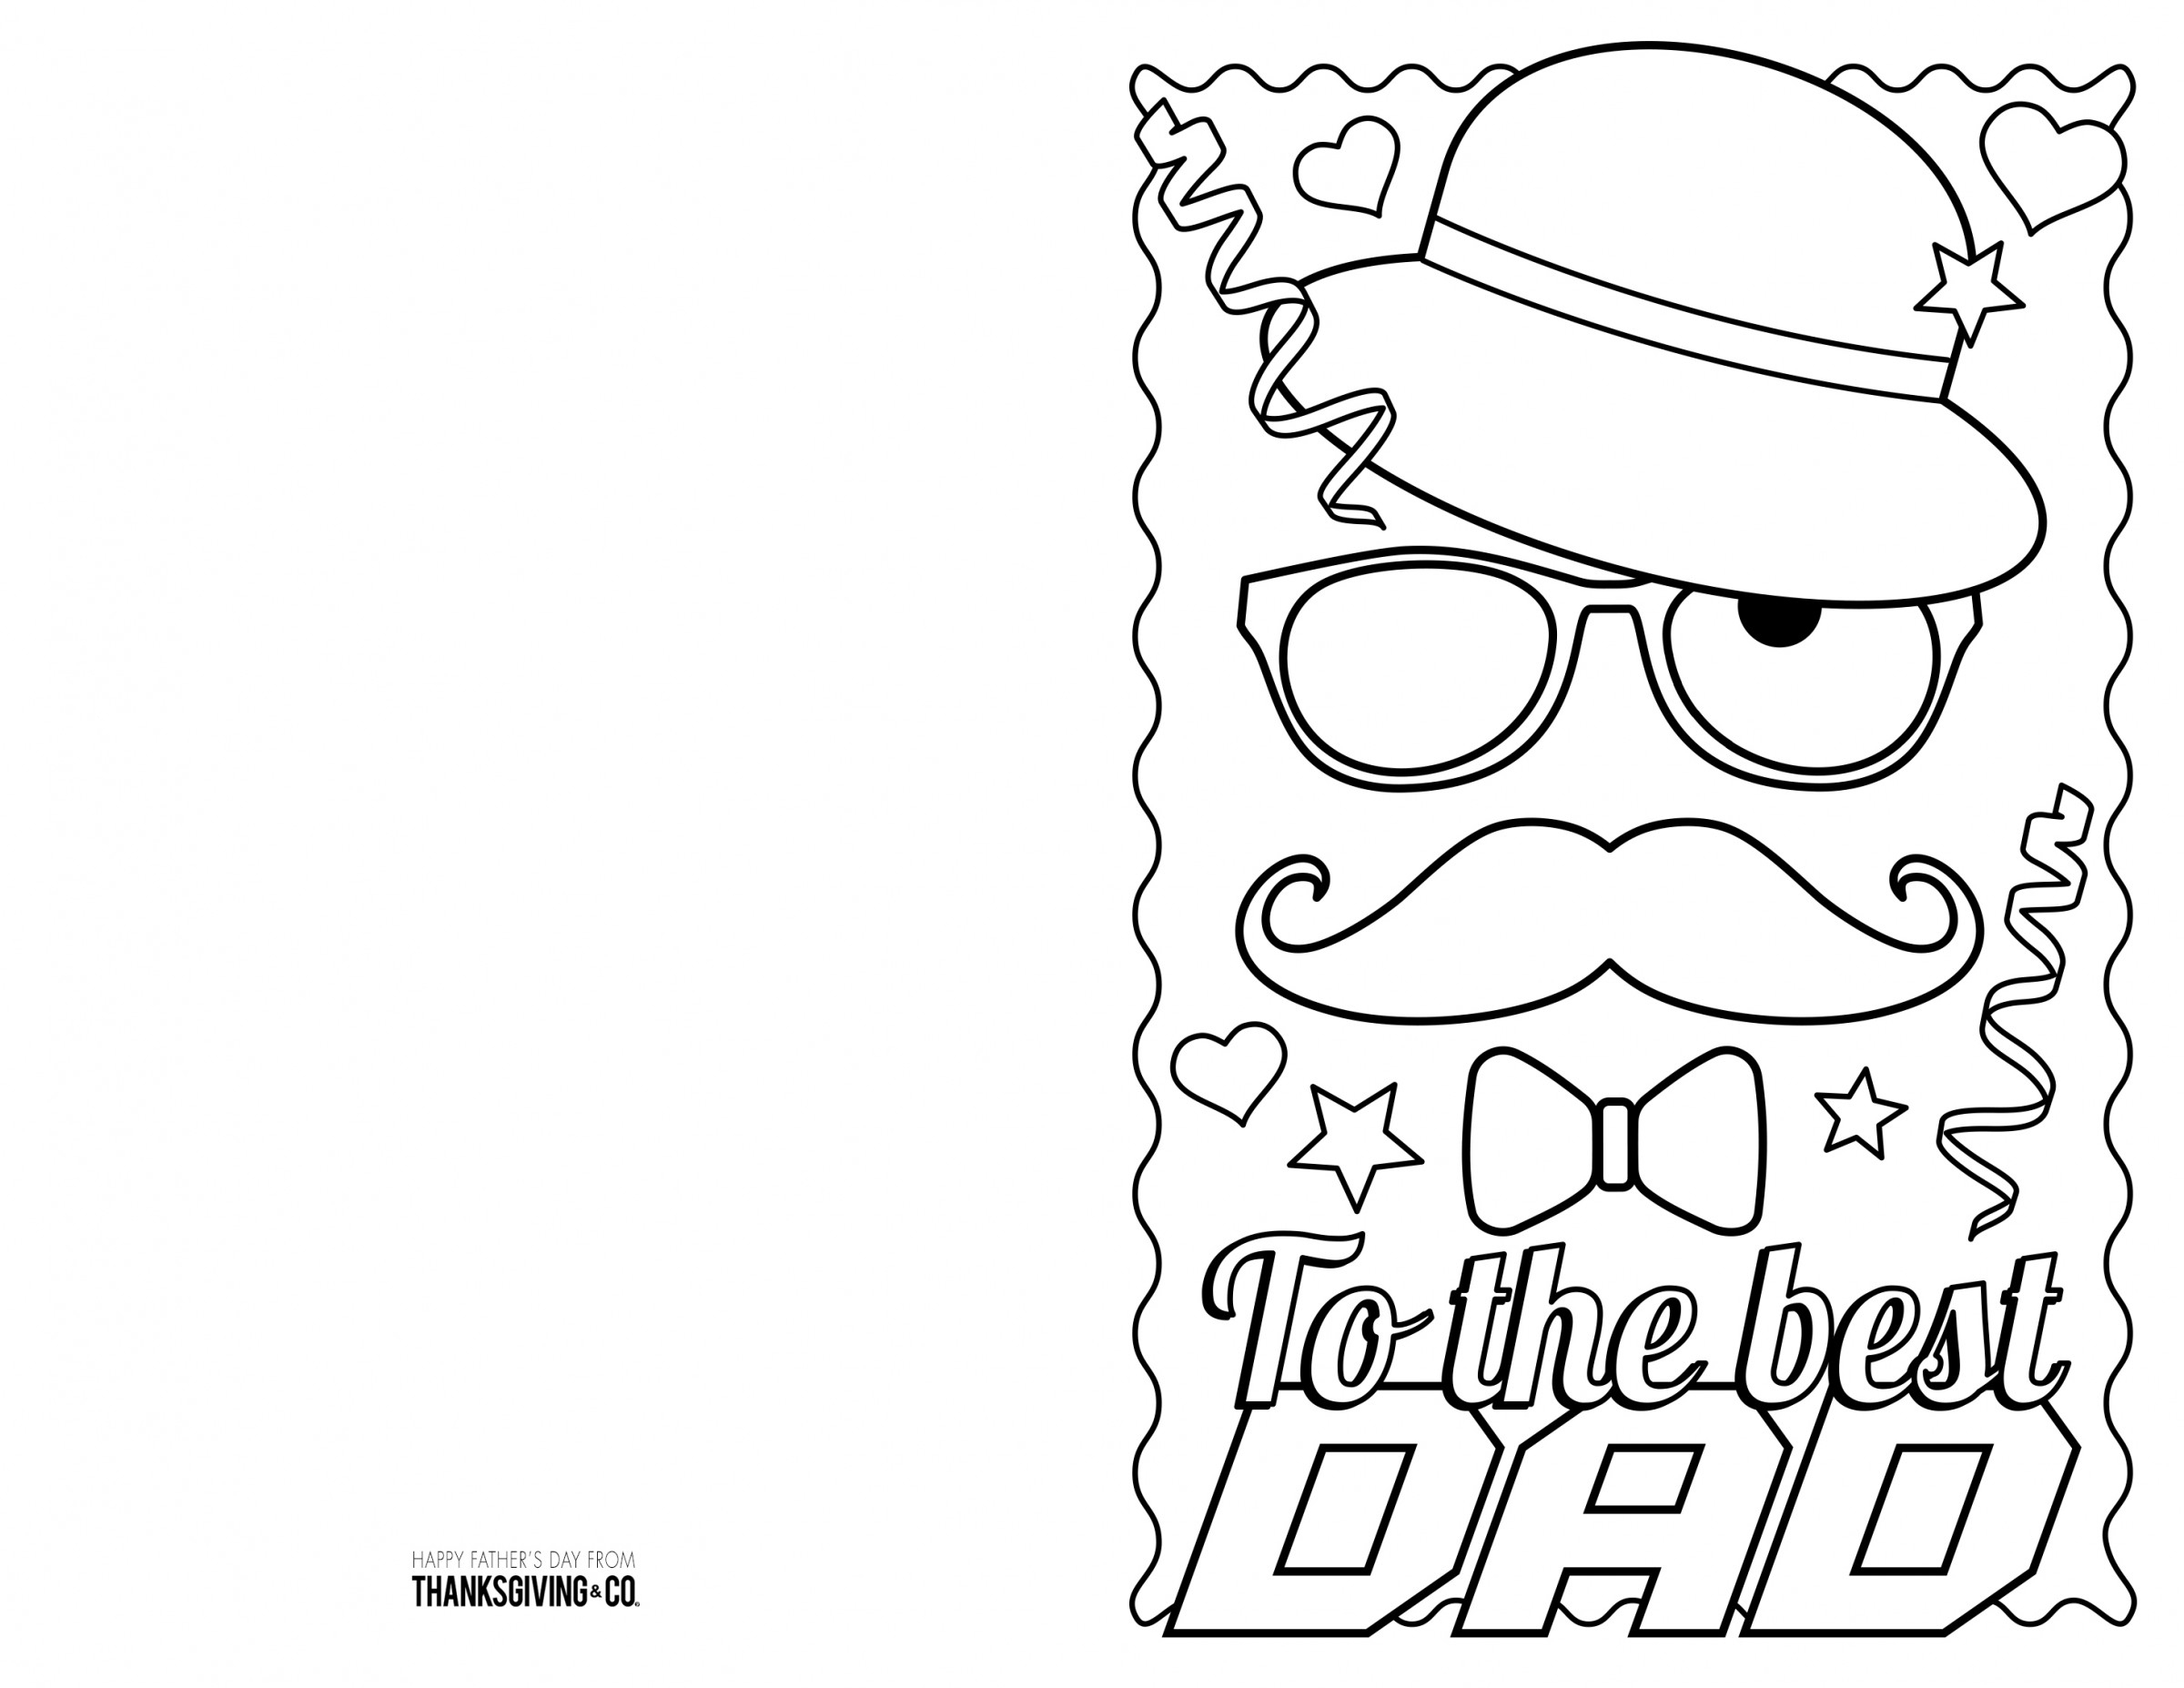 4 Free Printable Father's Day Cards To Color - Thanksgiving - Free Printable Fathers Day Cards